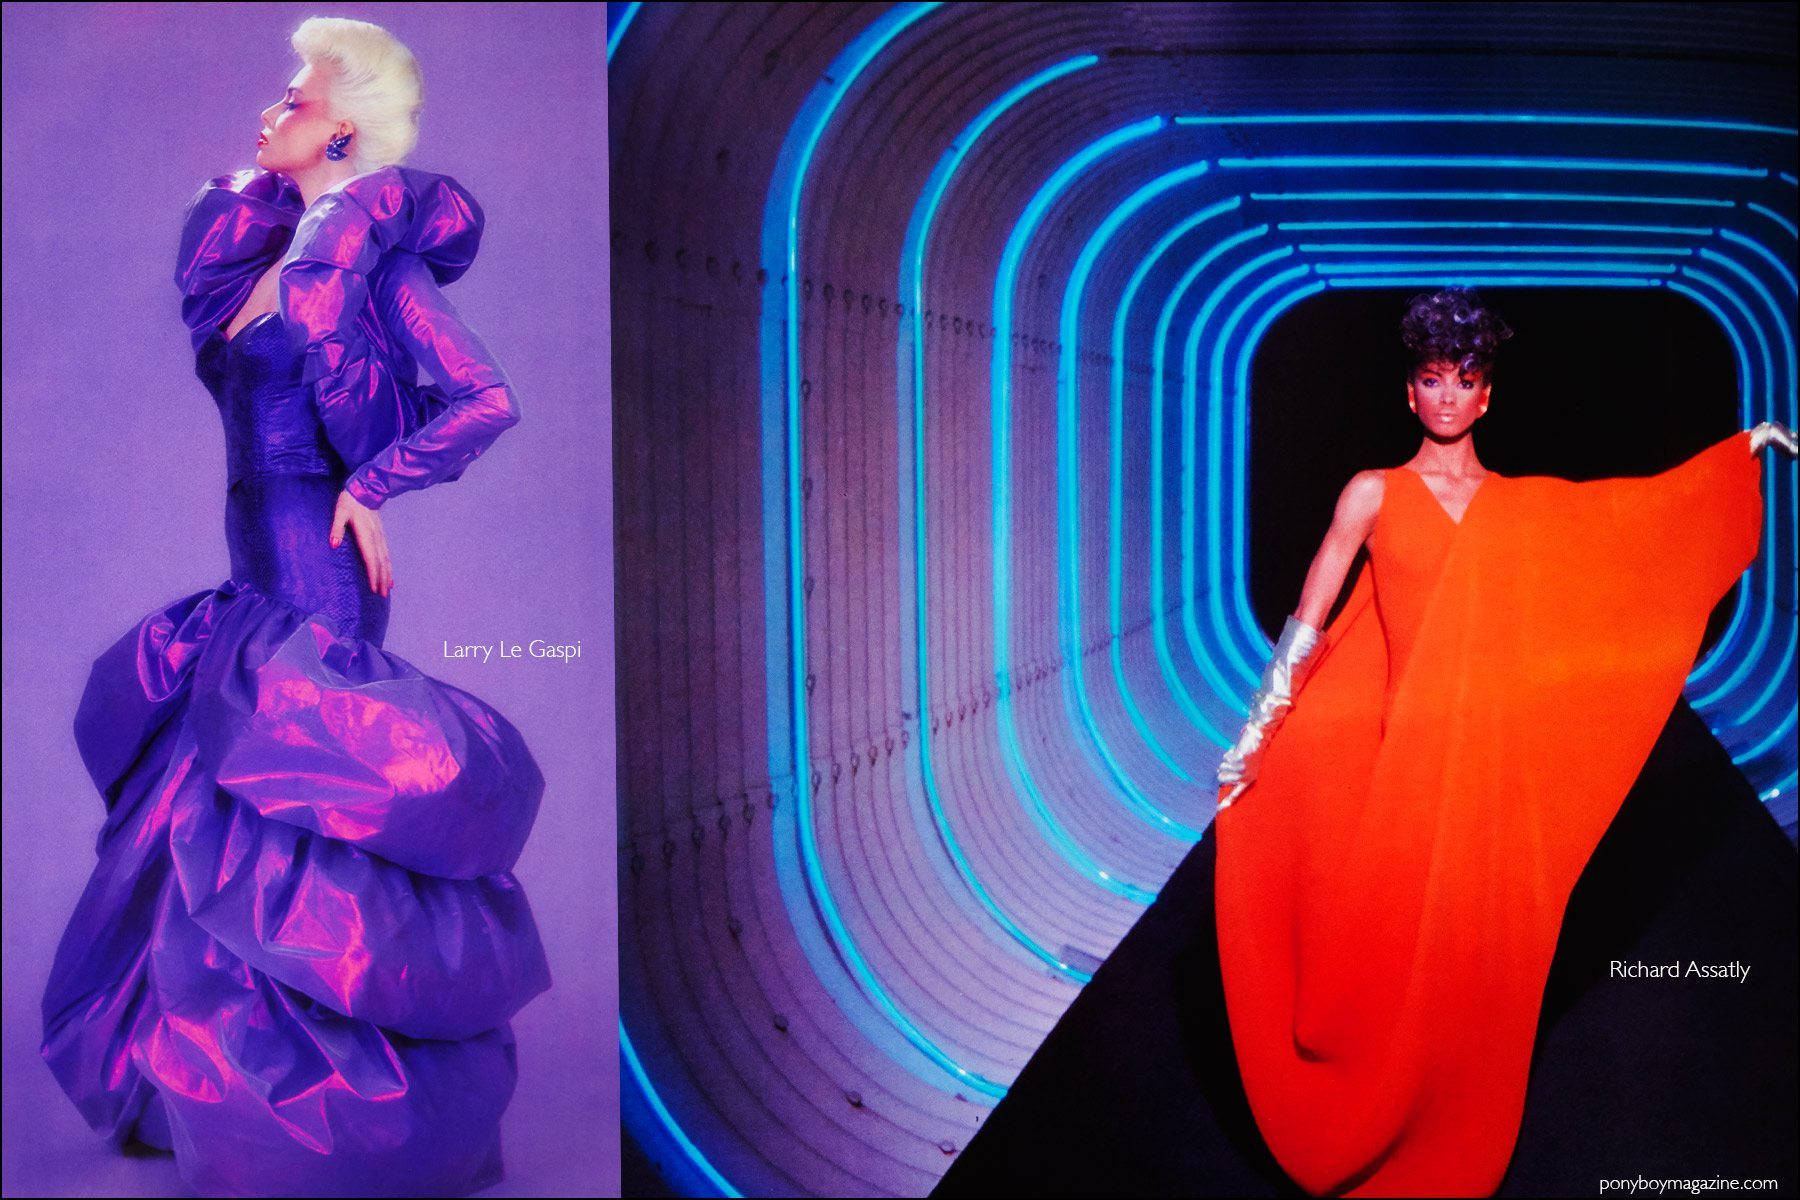 Futuristic fashion photos from the book Fashion: 2001 by Lucille Khornak. Ponyboy magazine NY.